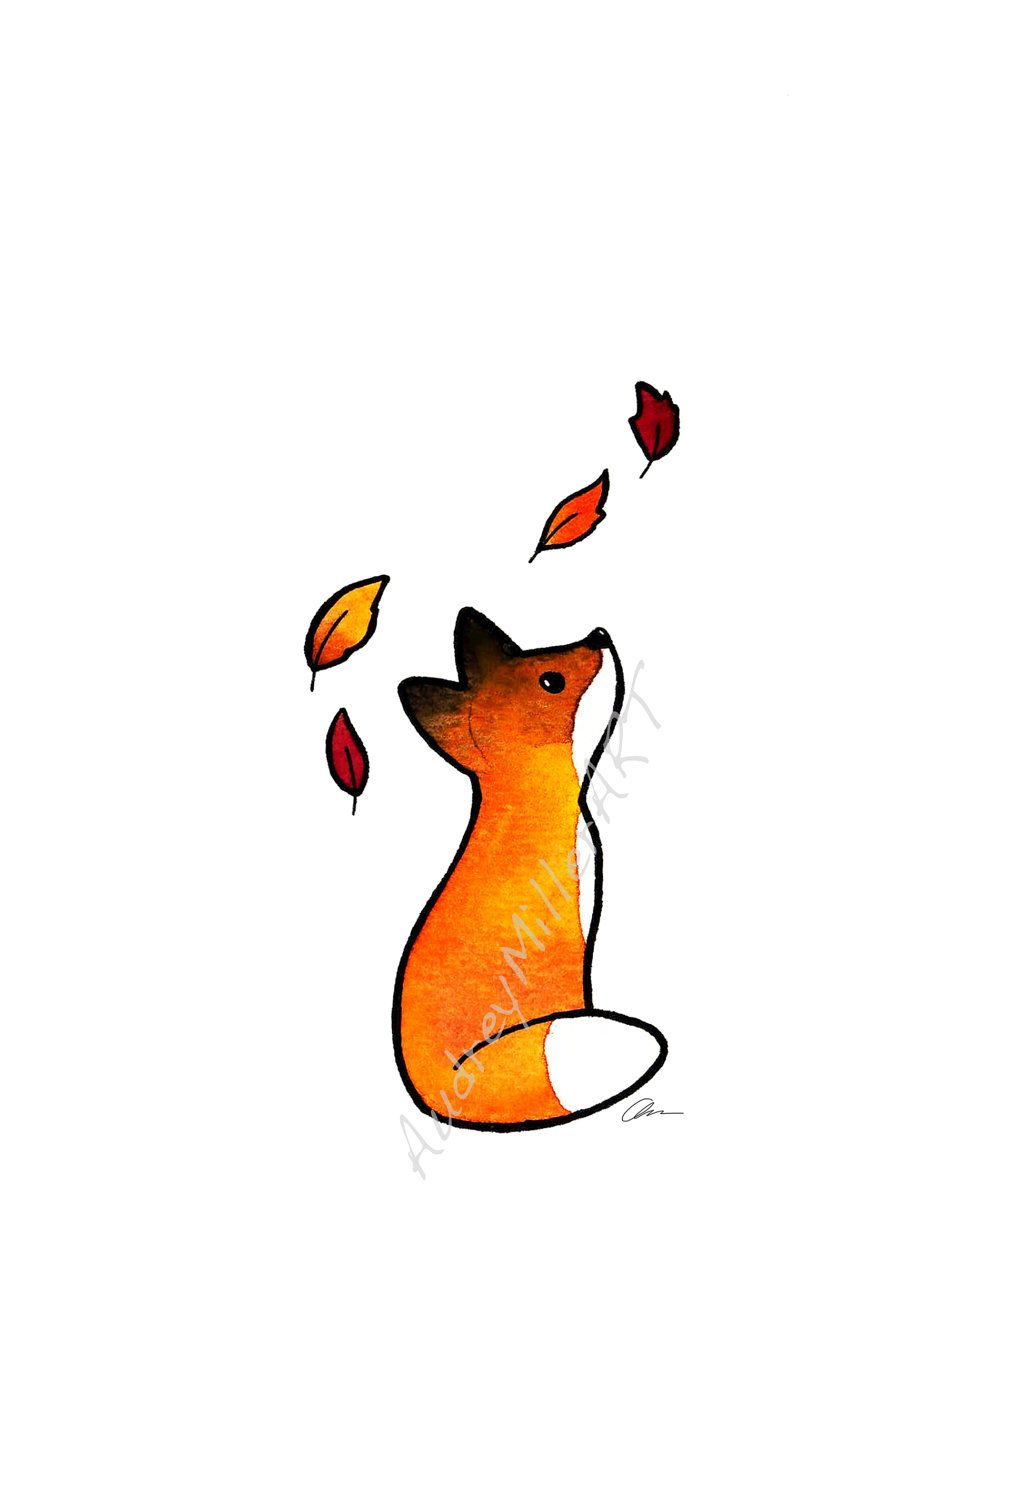 The Fox and The Leaves - 5x7 Art Print | Pinterest